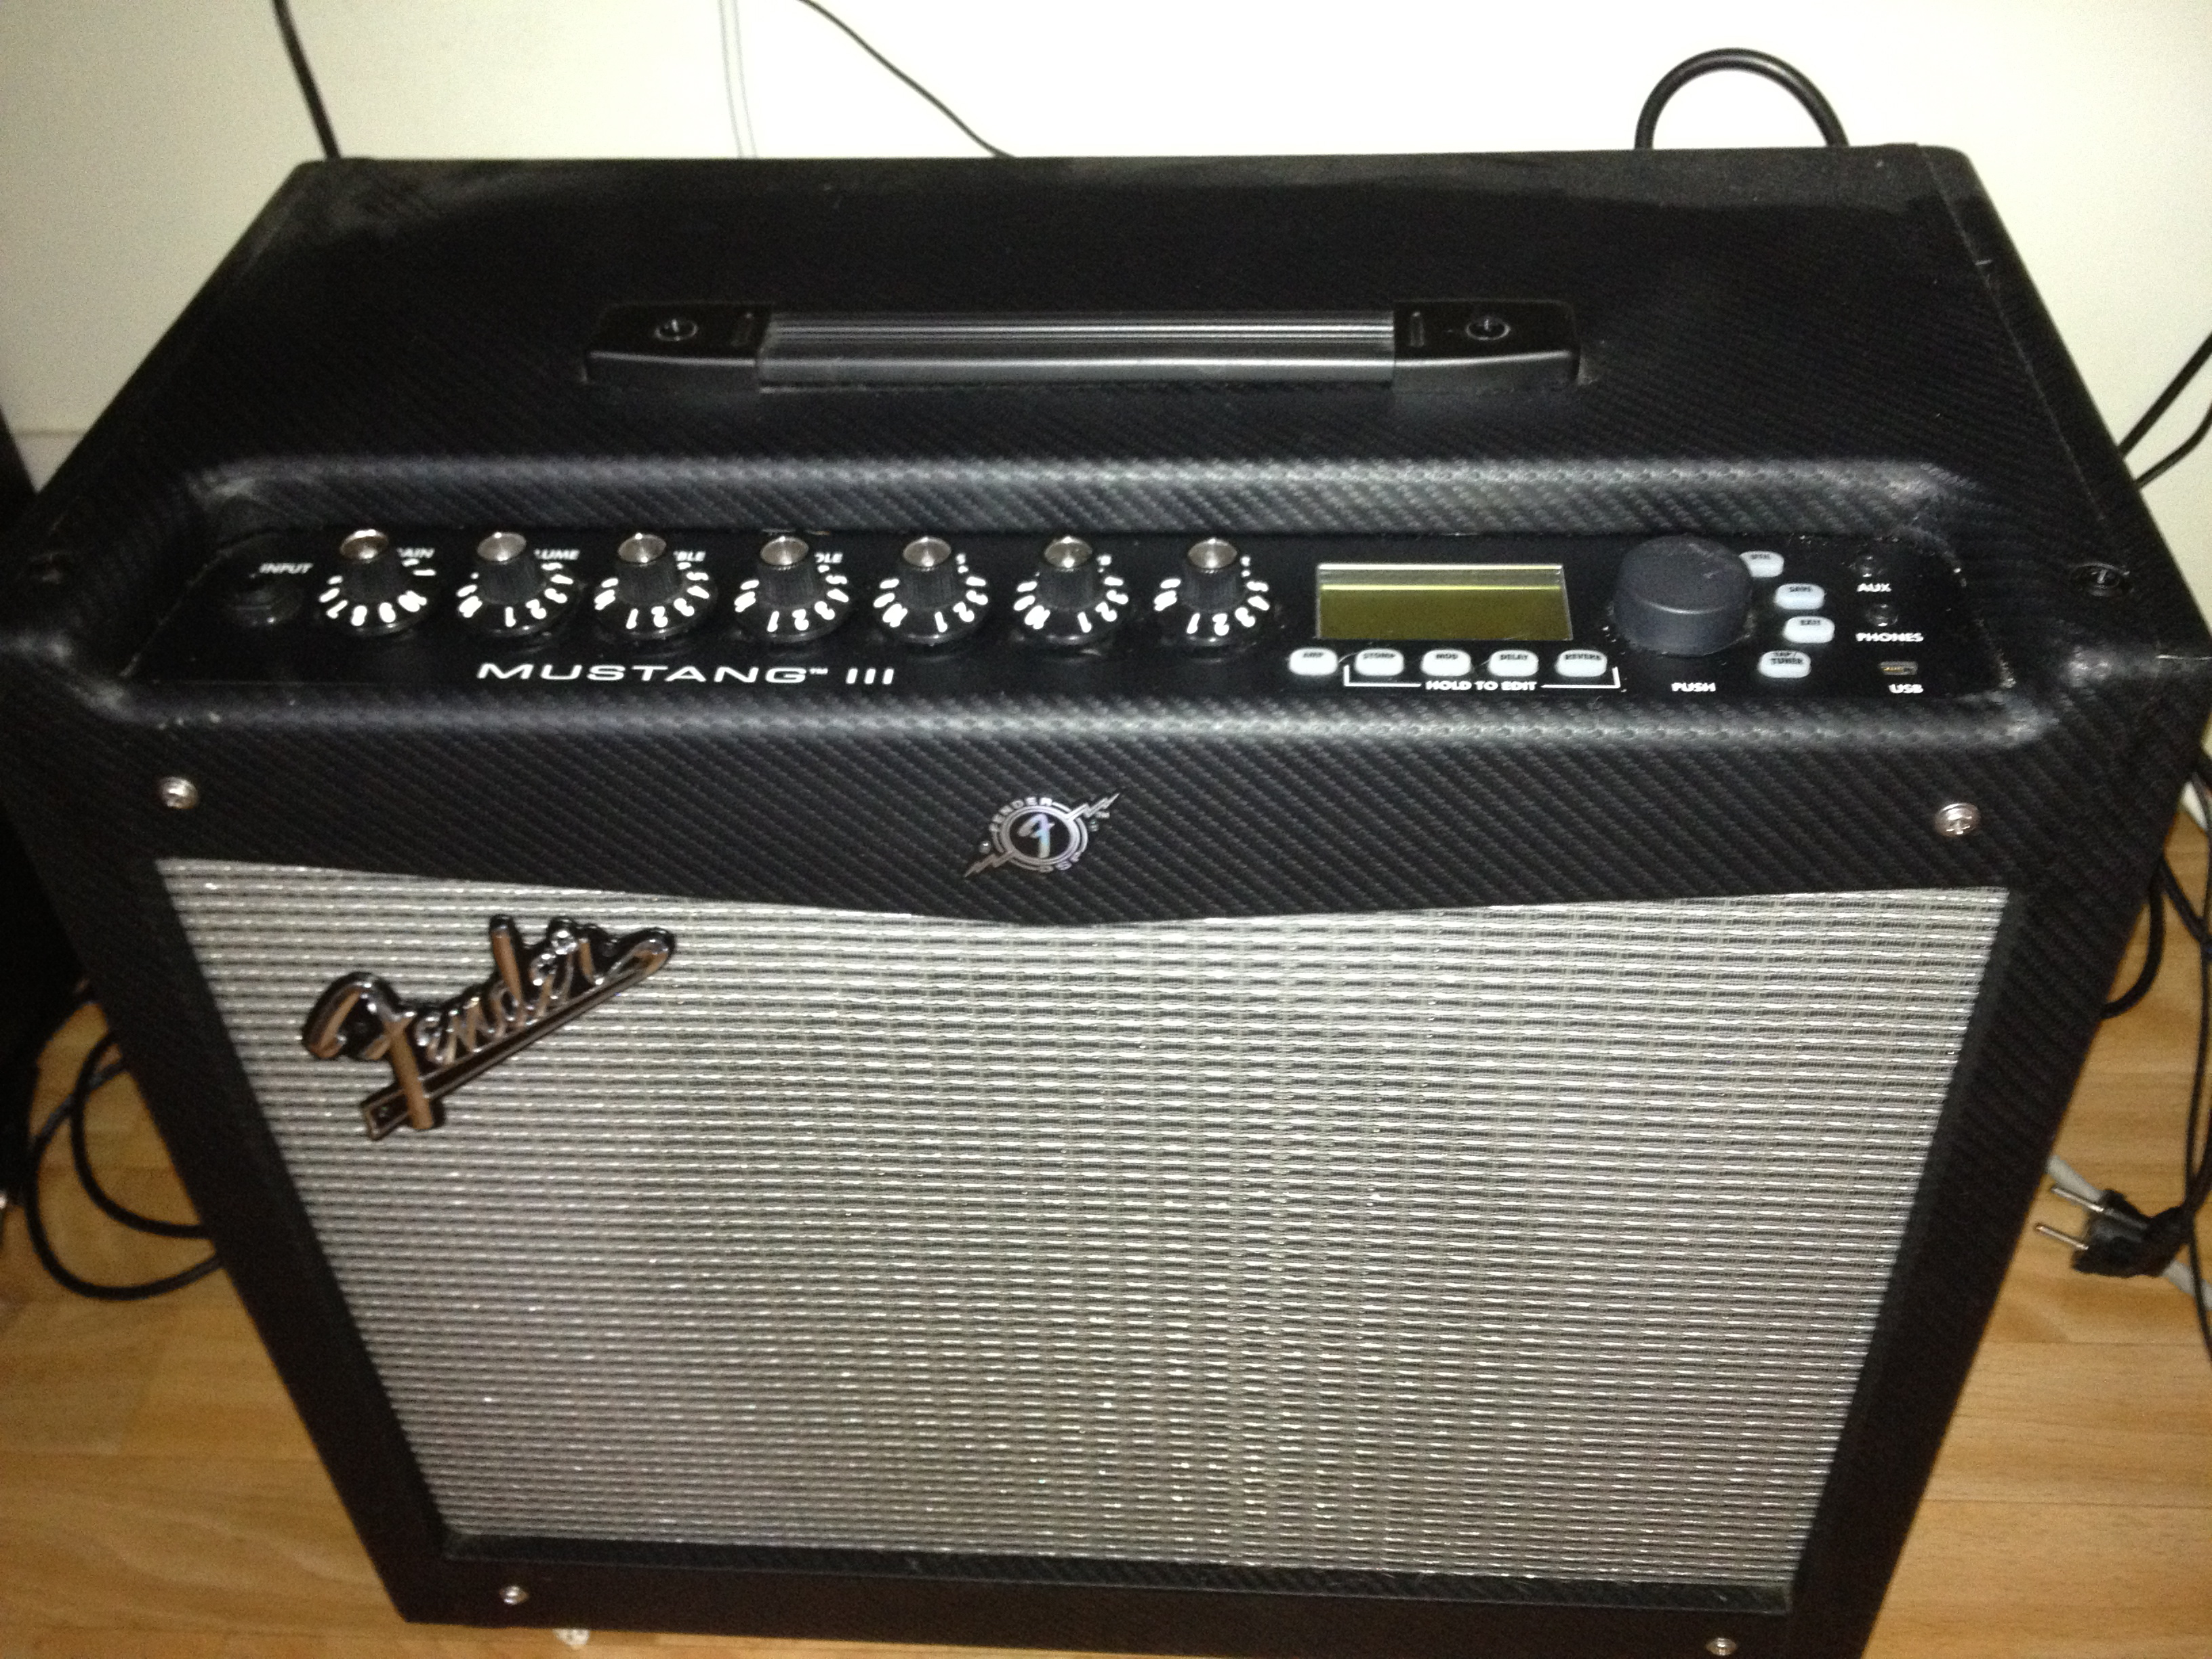 Tuki Padded Amp Cover for Fender Mustang III 1x12 ...